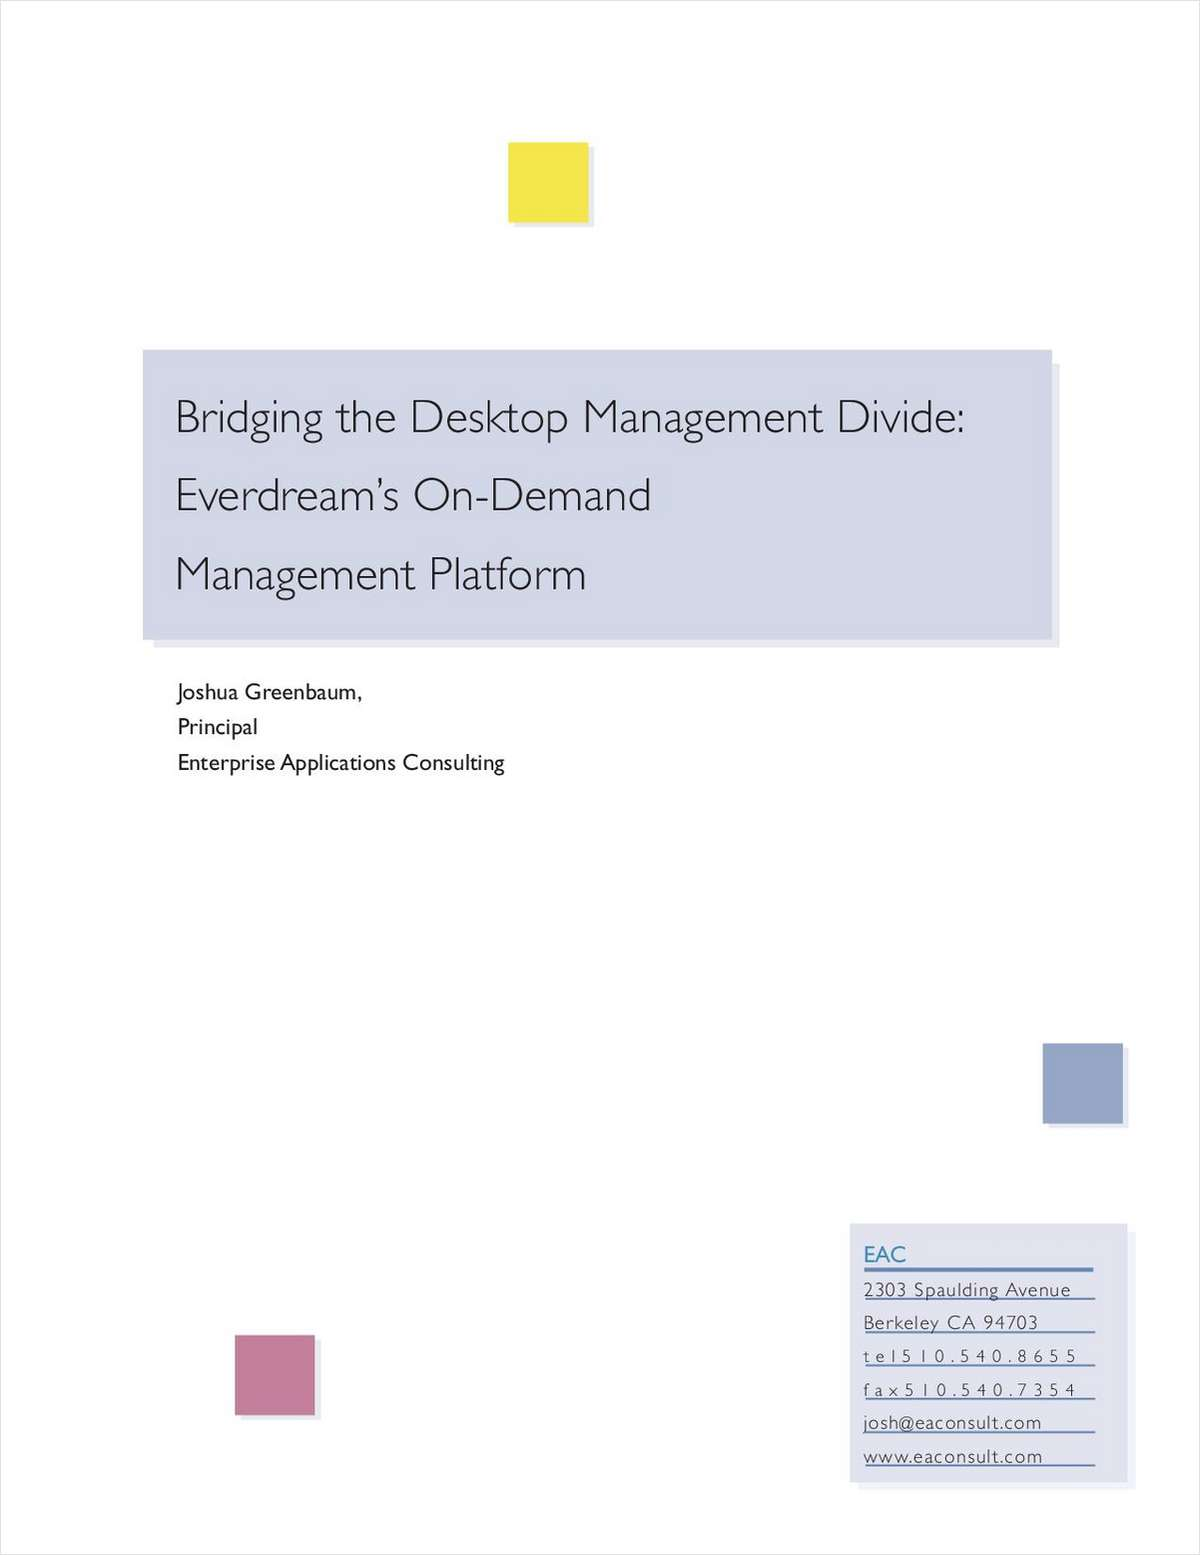 Bridging the Desktop Management Divide